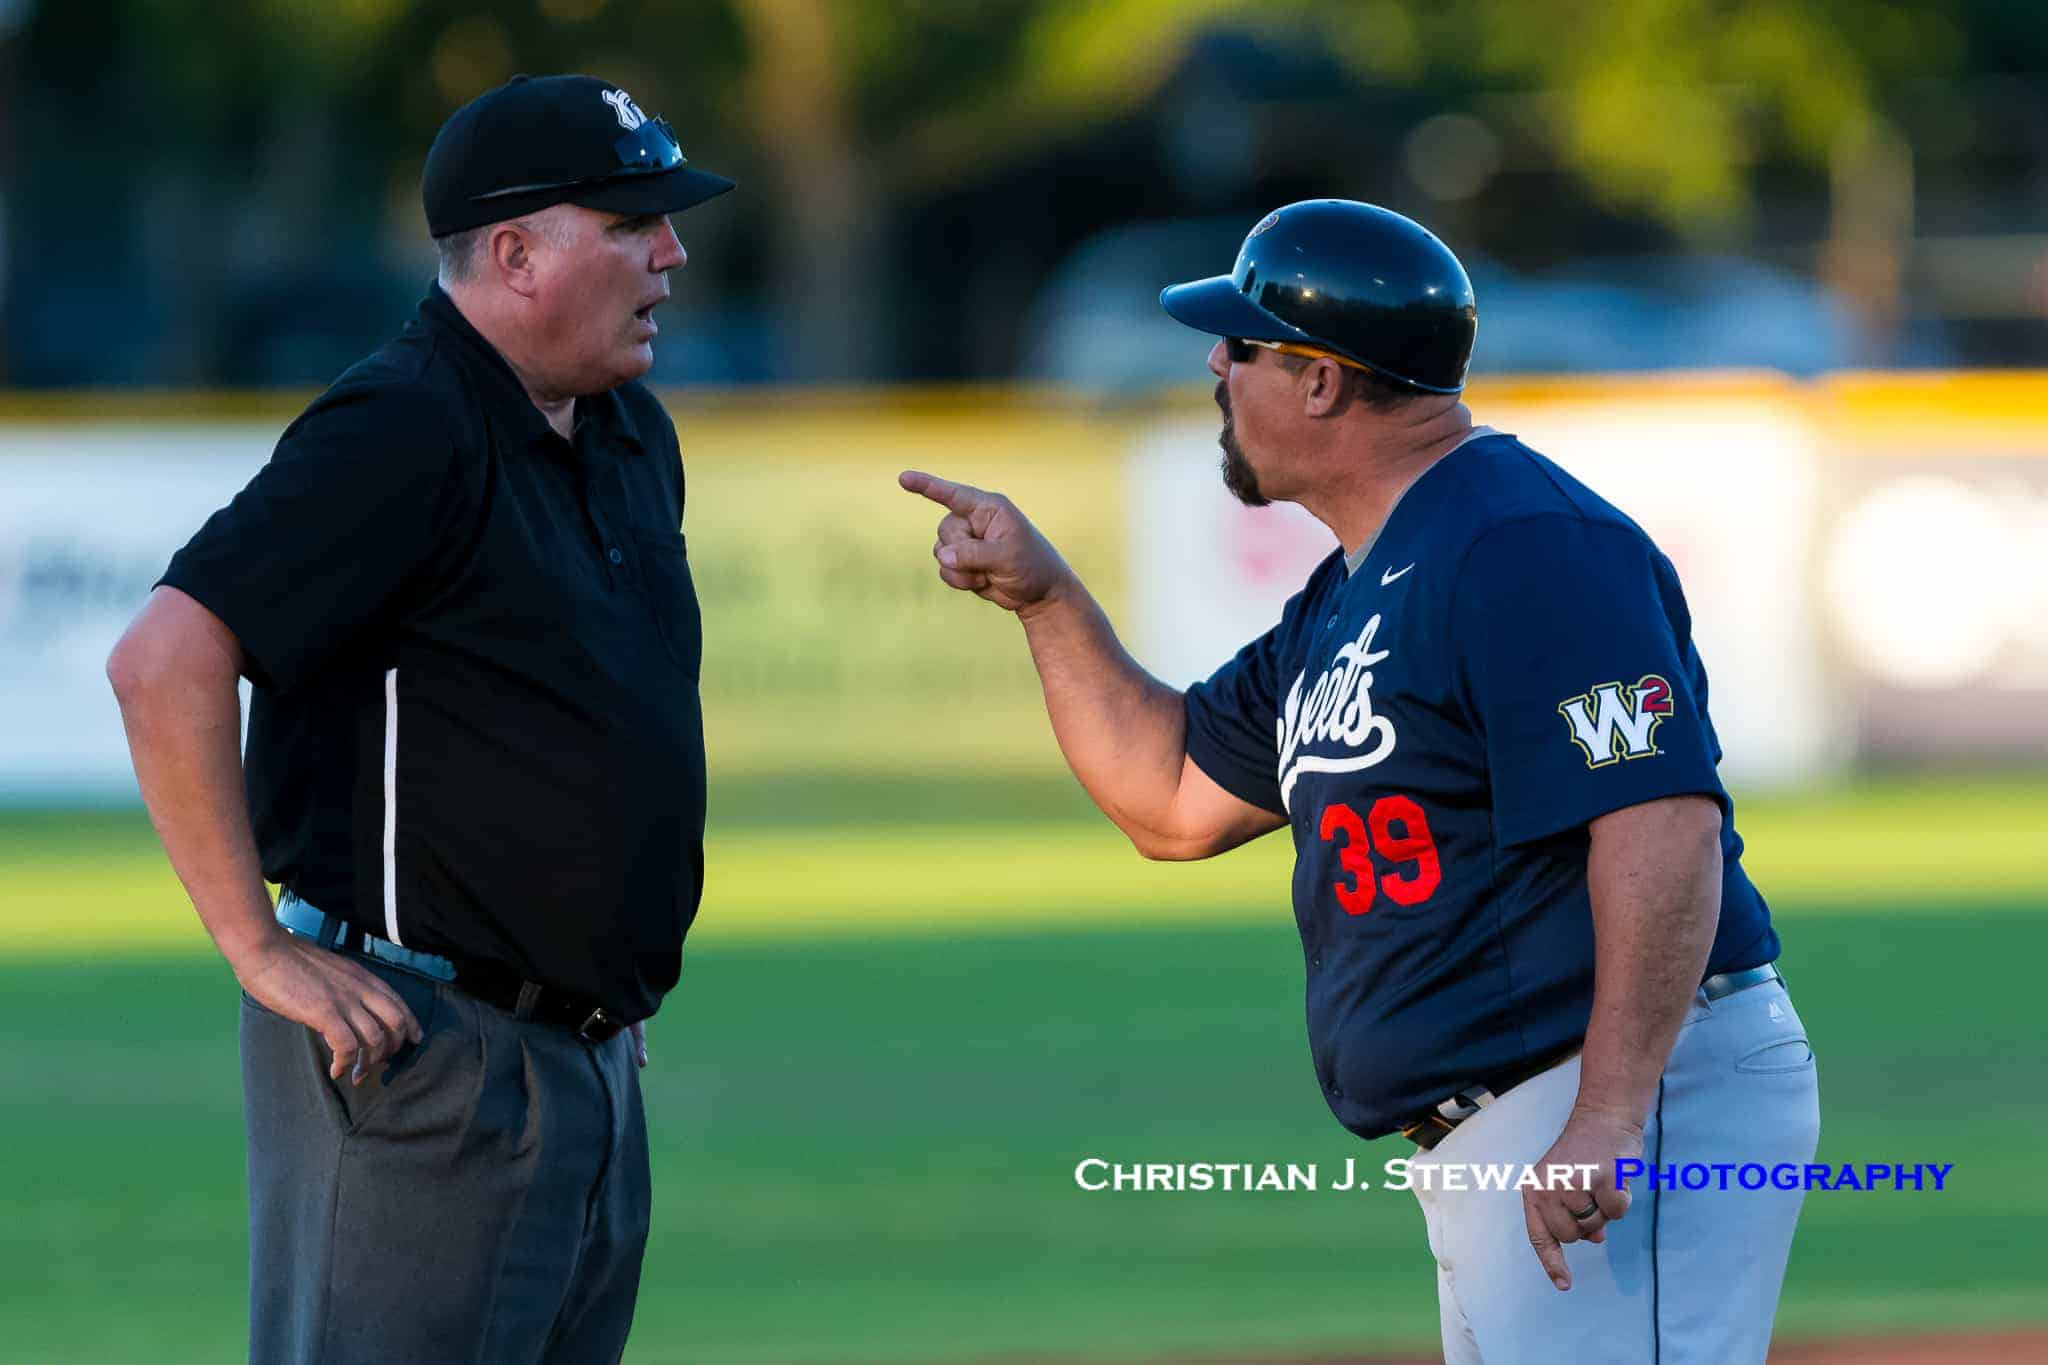 d14c661d4a3c4b Sweets  Manager Frank Mutz gives umpire Sean Sullivan a piece of his mind  after being ejected for arguing a close call at third base late in  Saturday s game ...